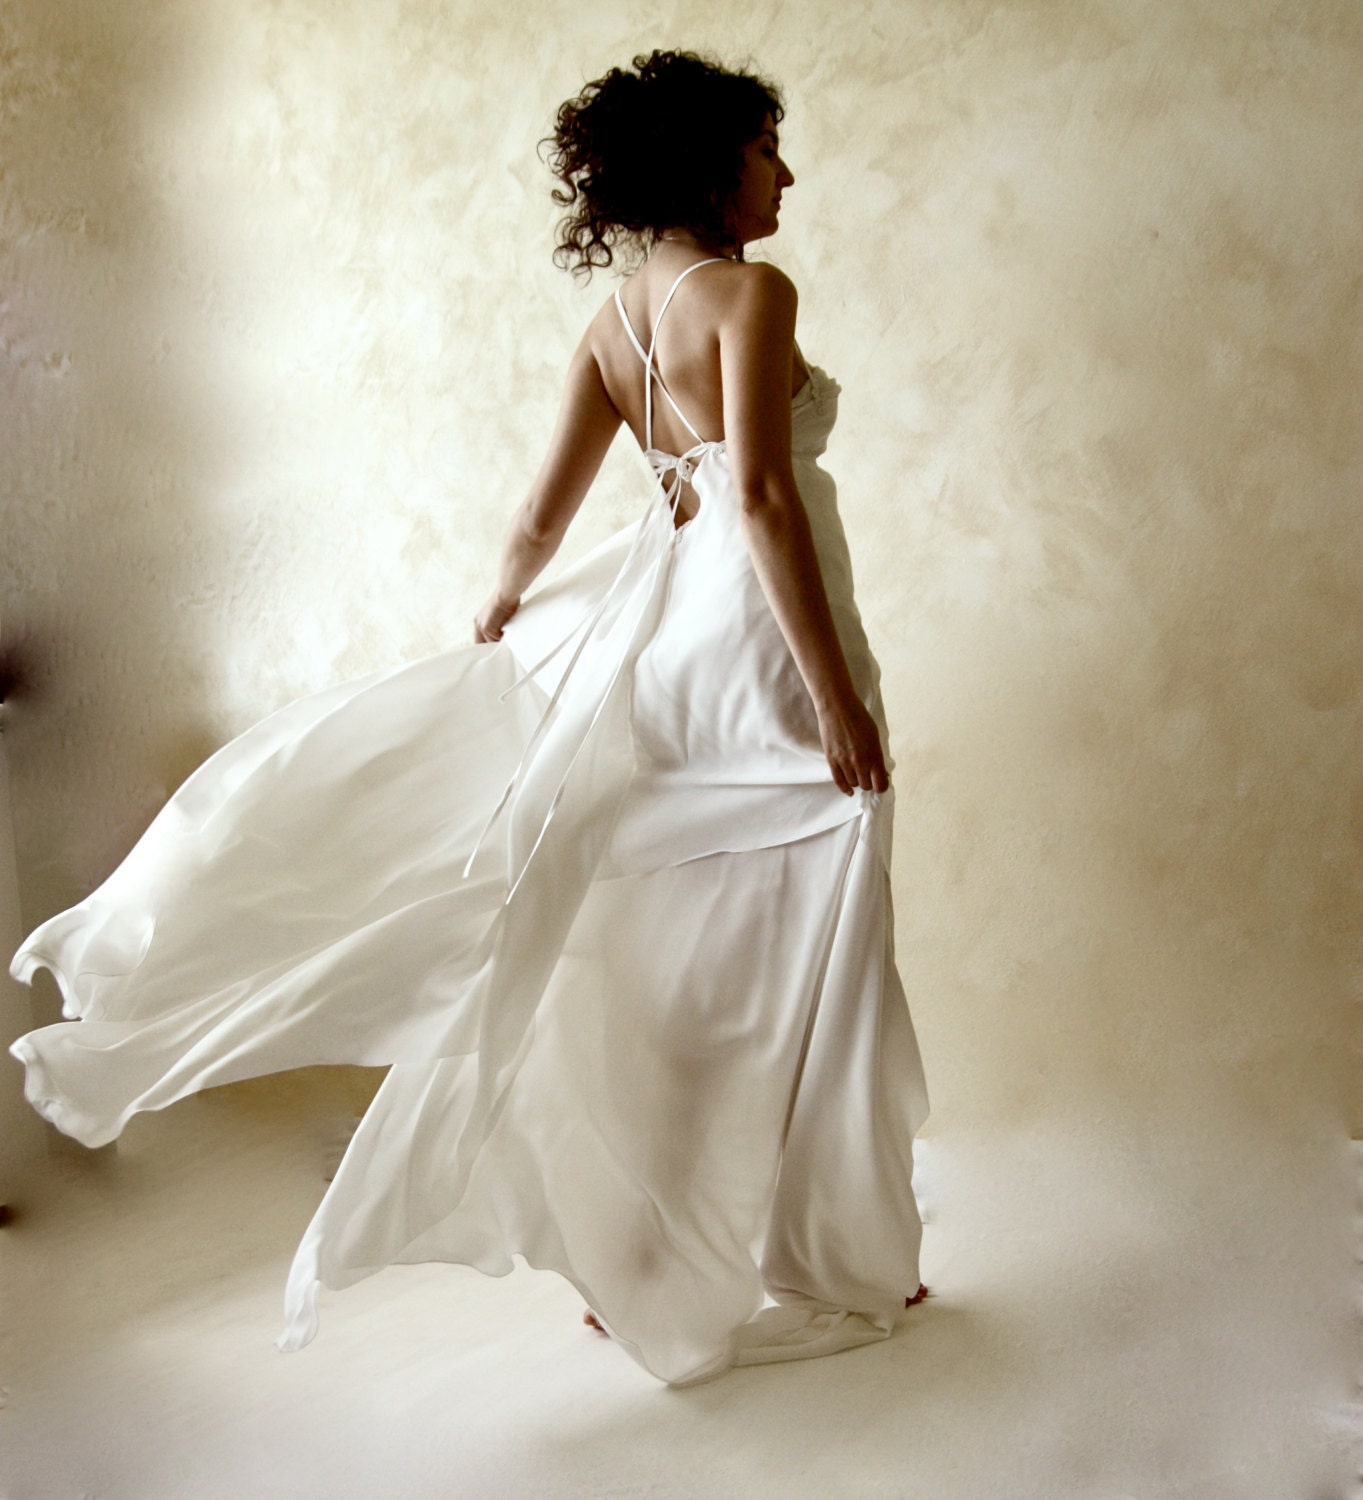 Wedding dress bridal gown open back wedding dress ethereal for Ethereal wedding dress